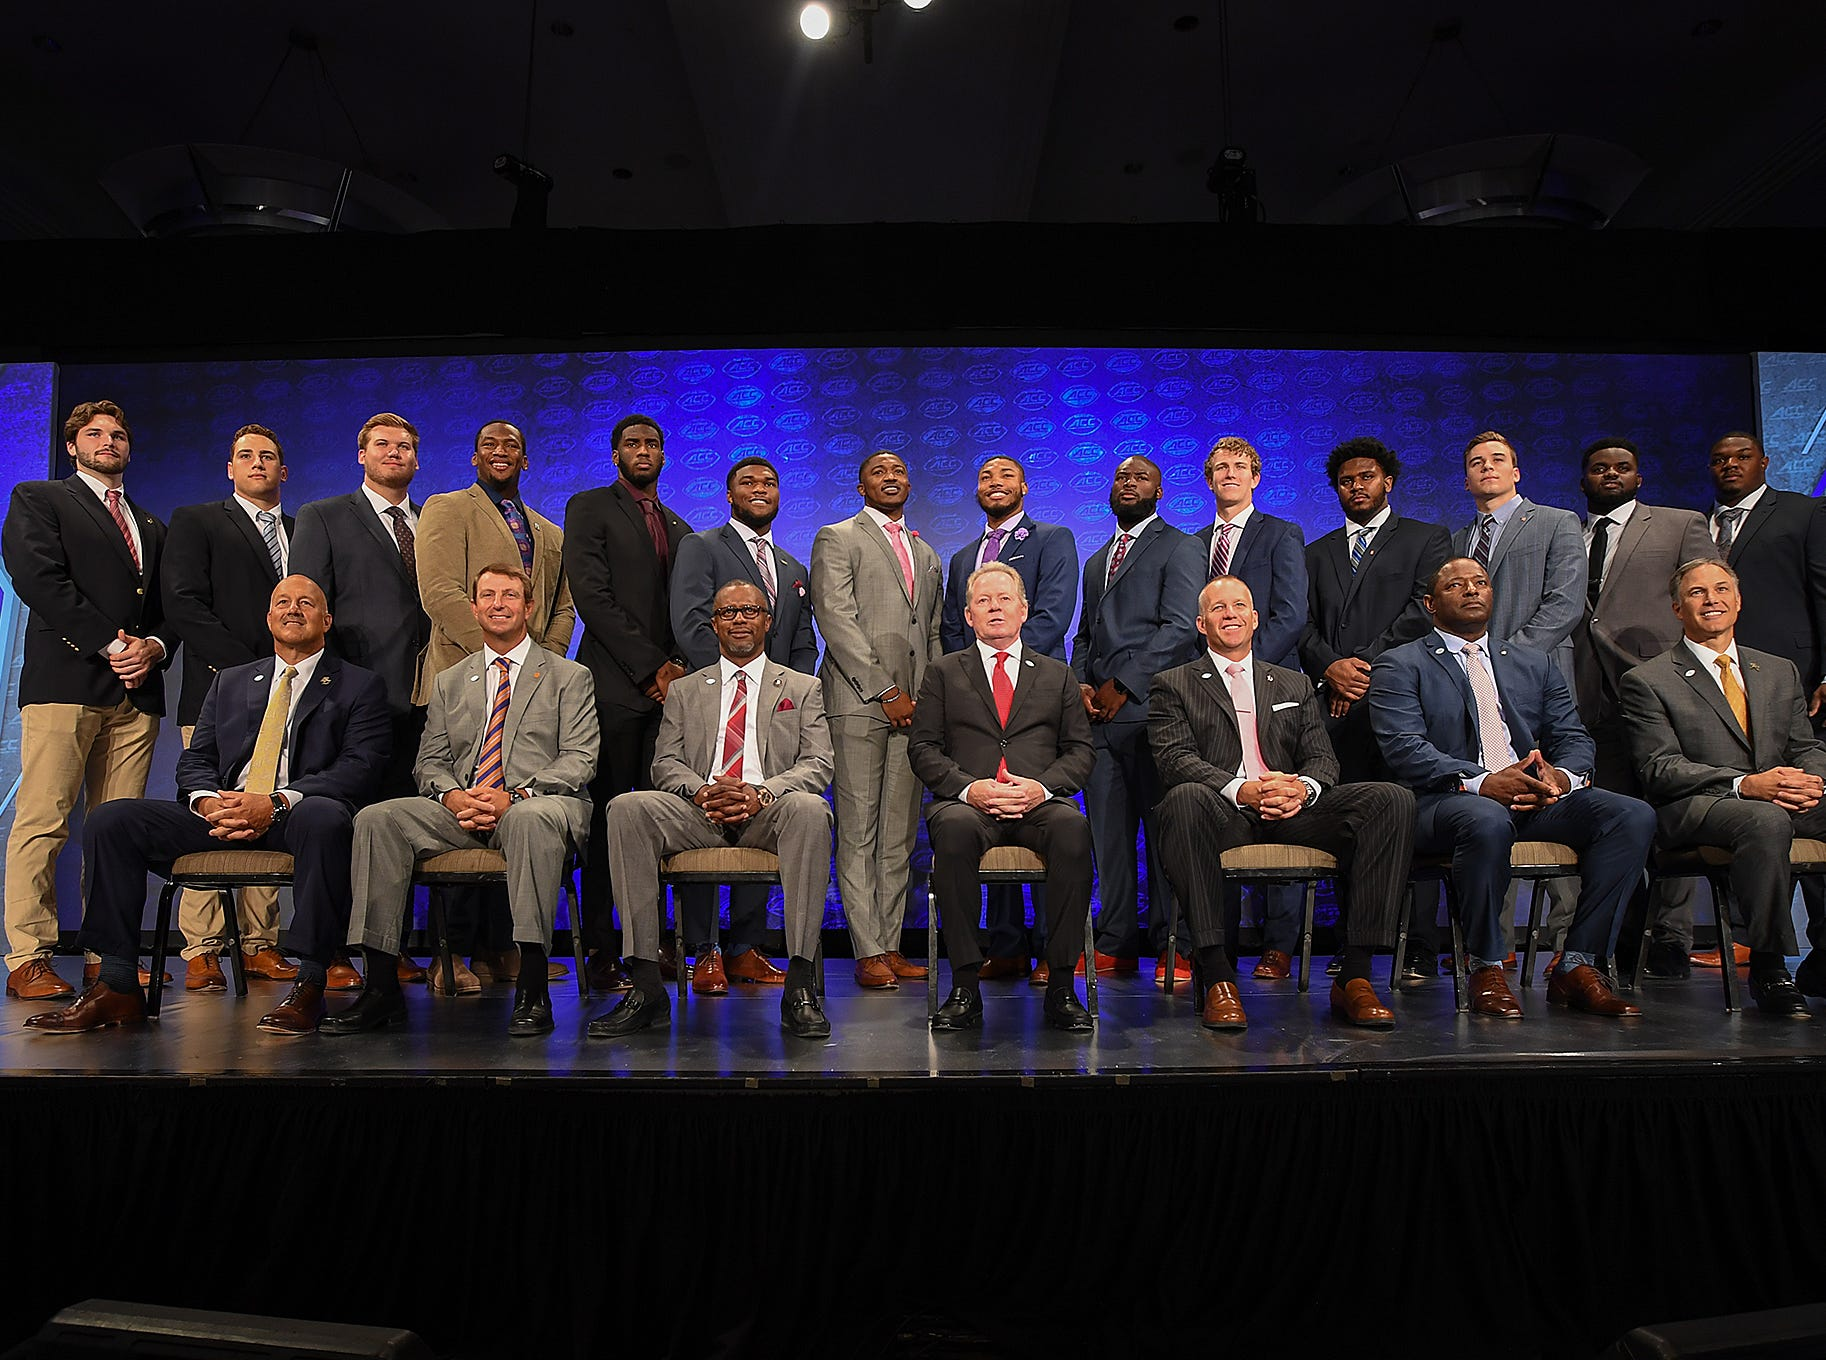 Players and coaches from the Atlantic Division pose for a group photo at the ACC Football Kickoff in Charlotte, N.C., Thursday, July 19, 2018.